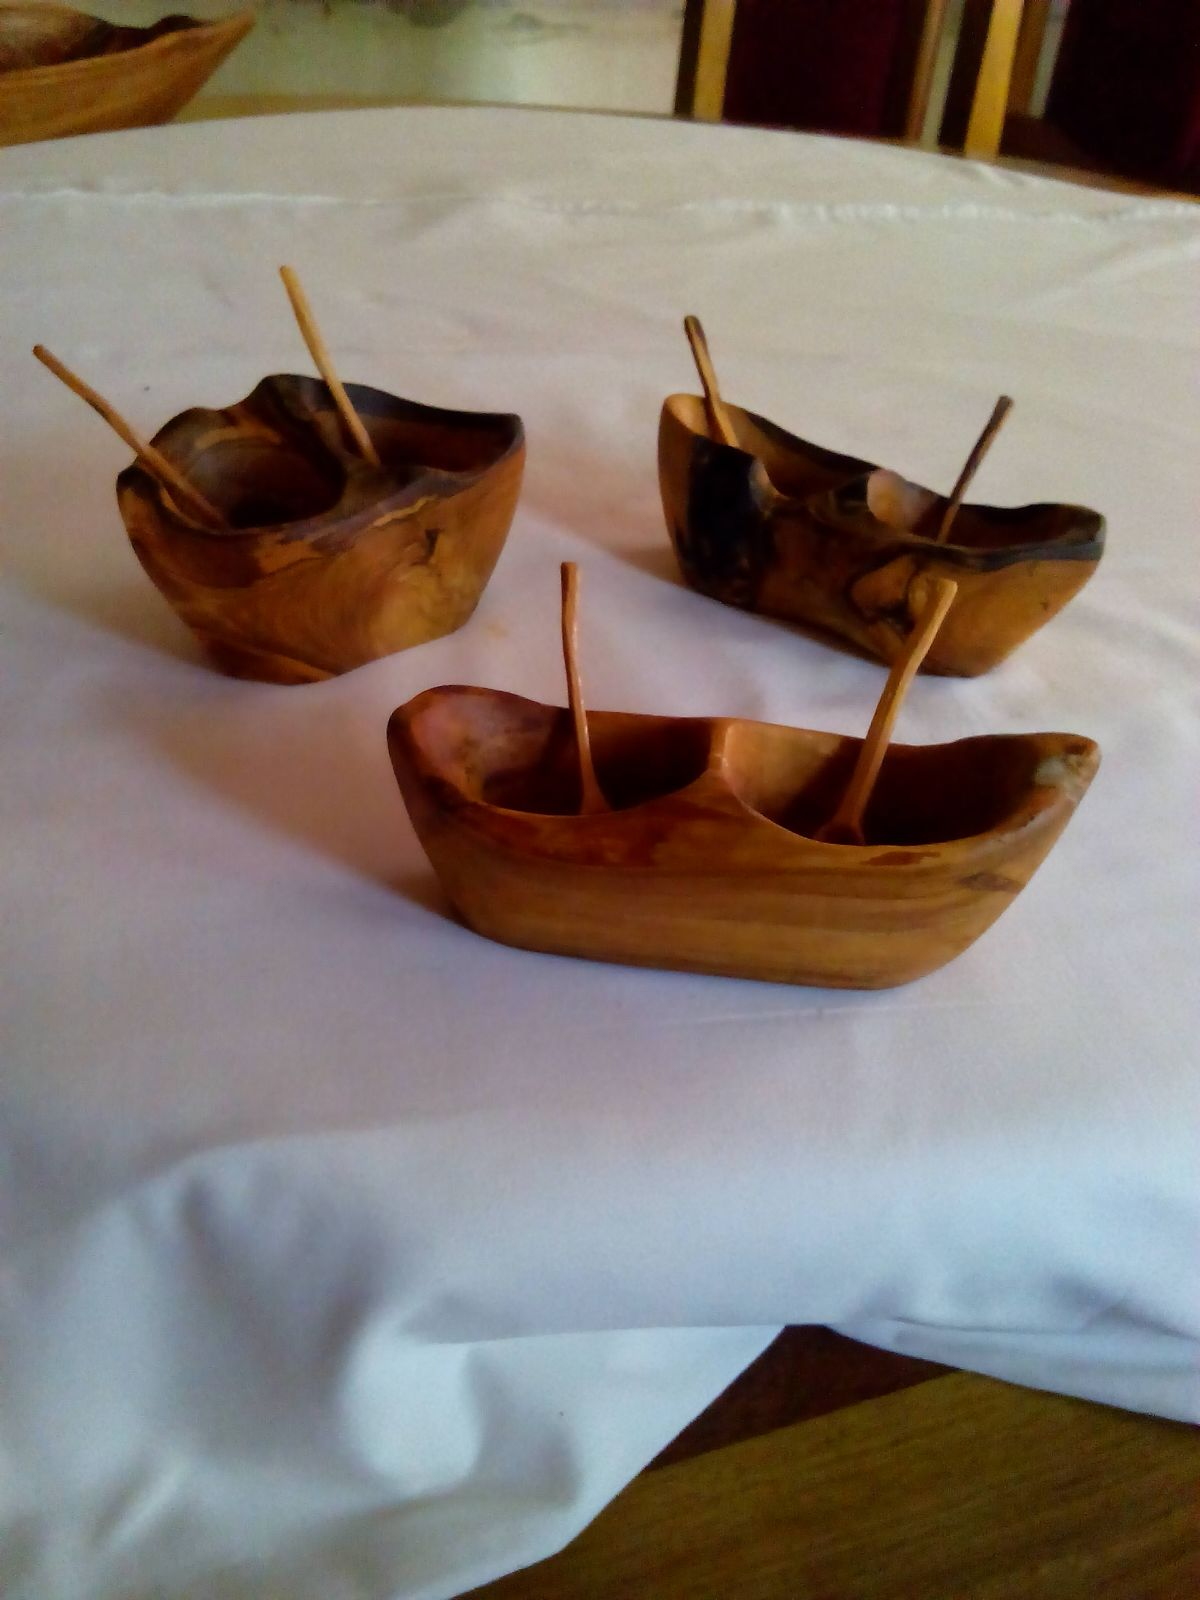 the item is a carved out sugar bowl 6 inches long and 4 inches wide with wooden spoons 45inches long i can also make the item to your specification